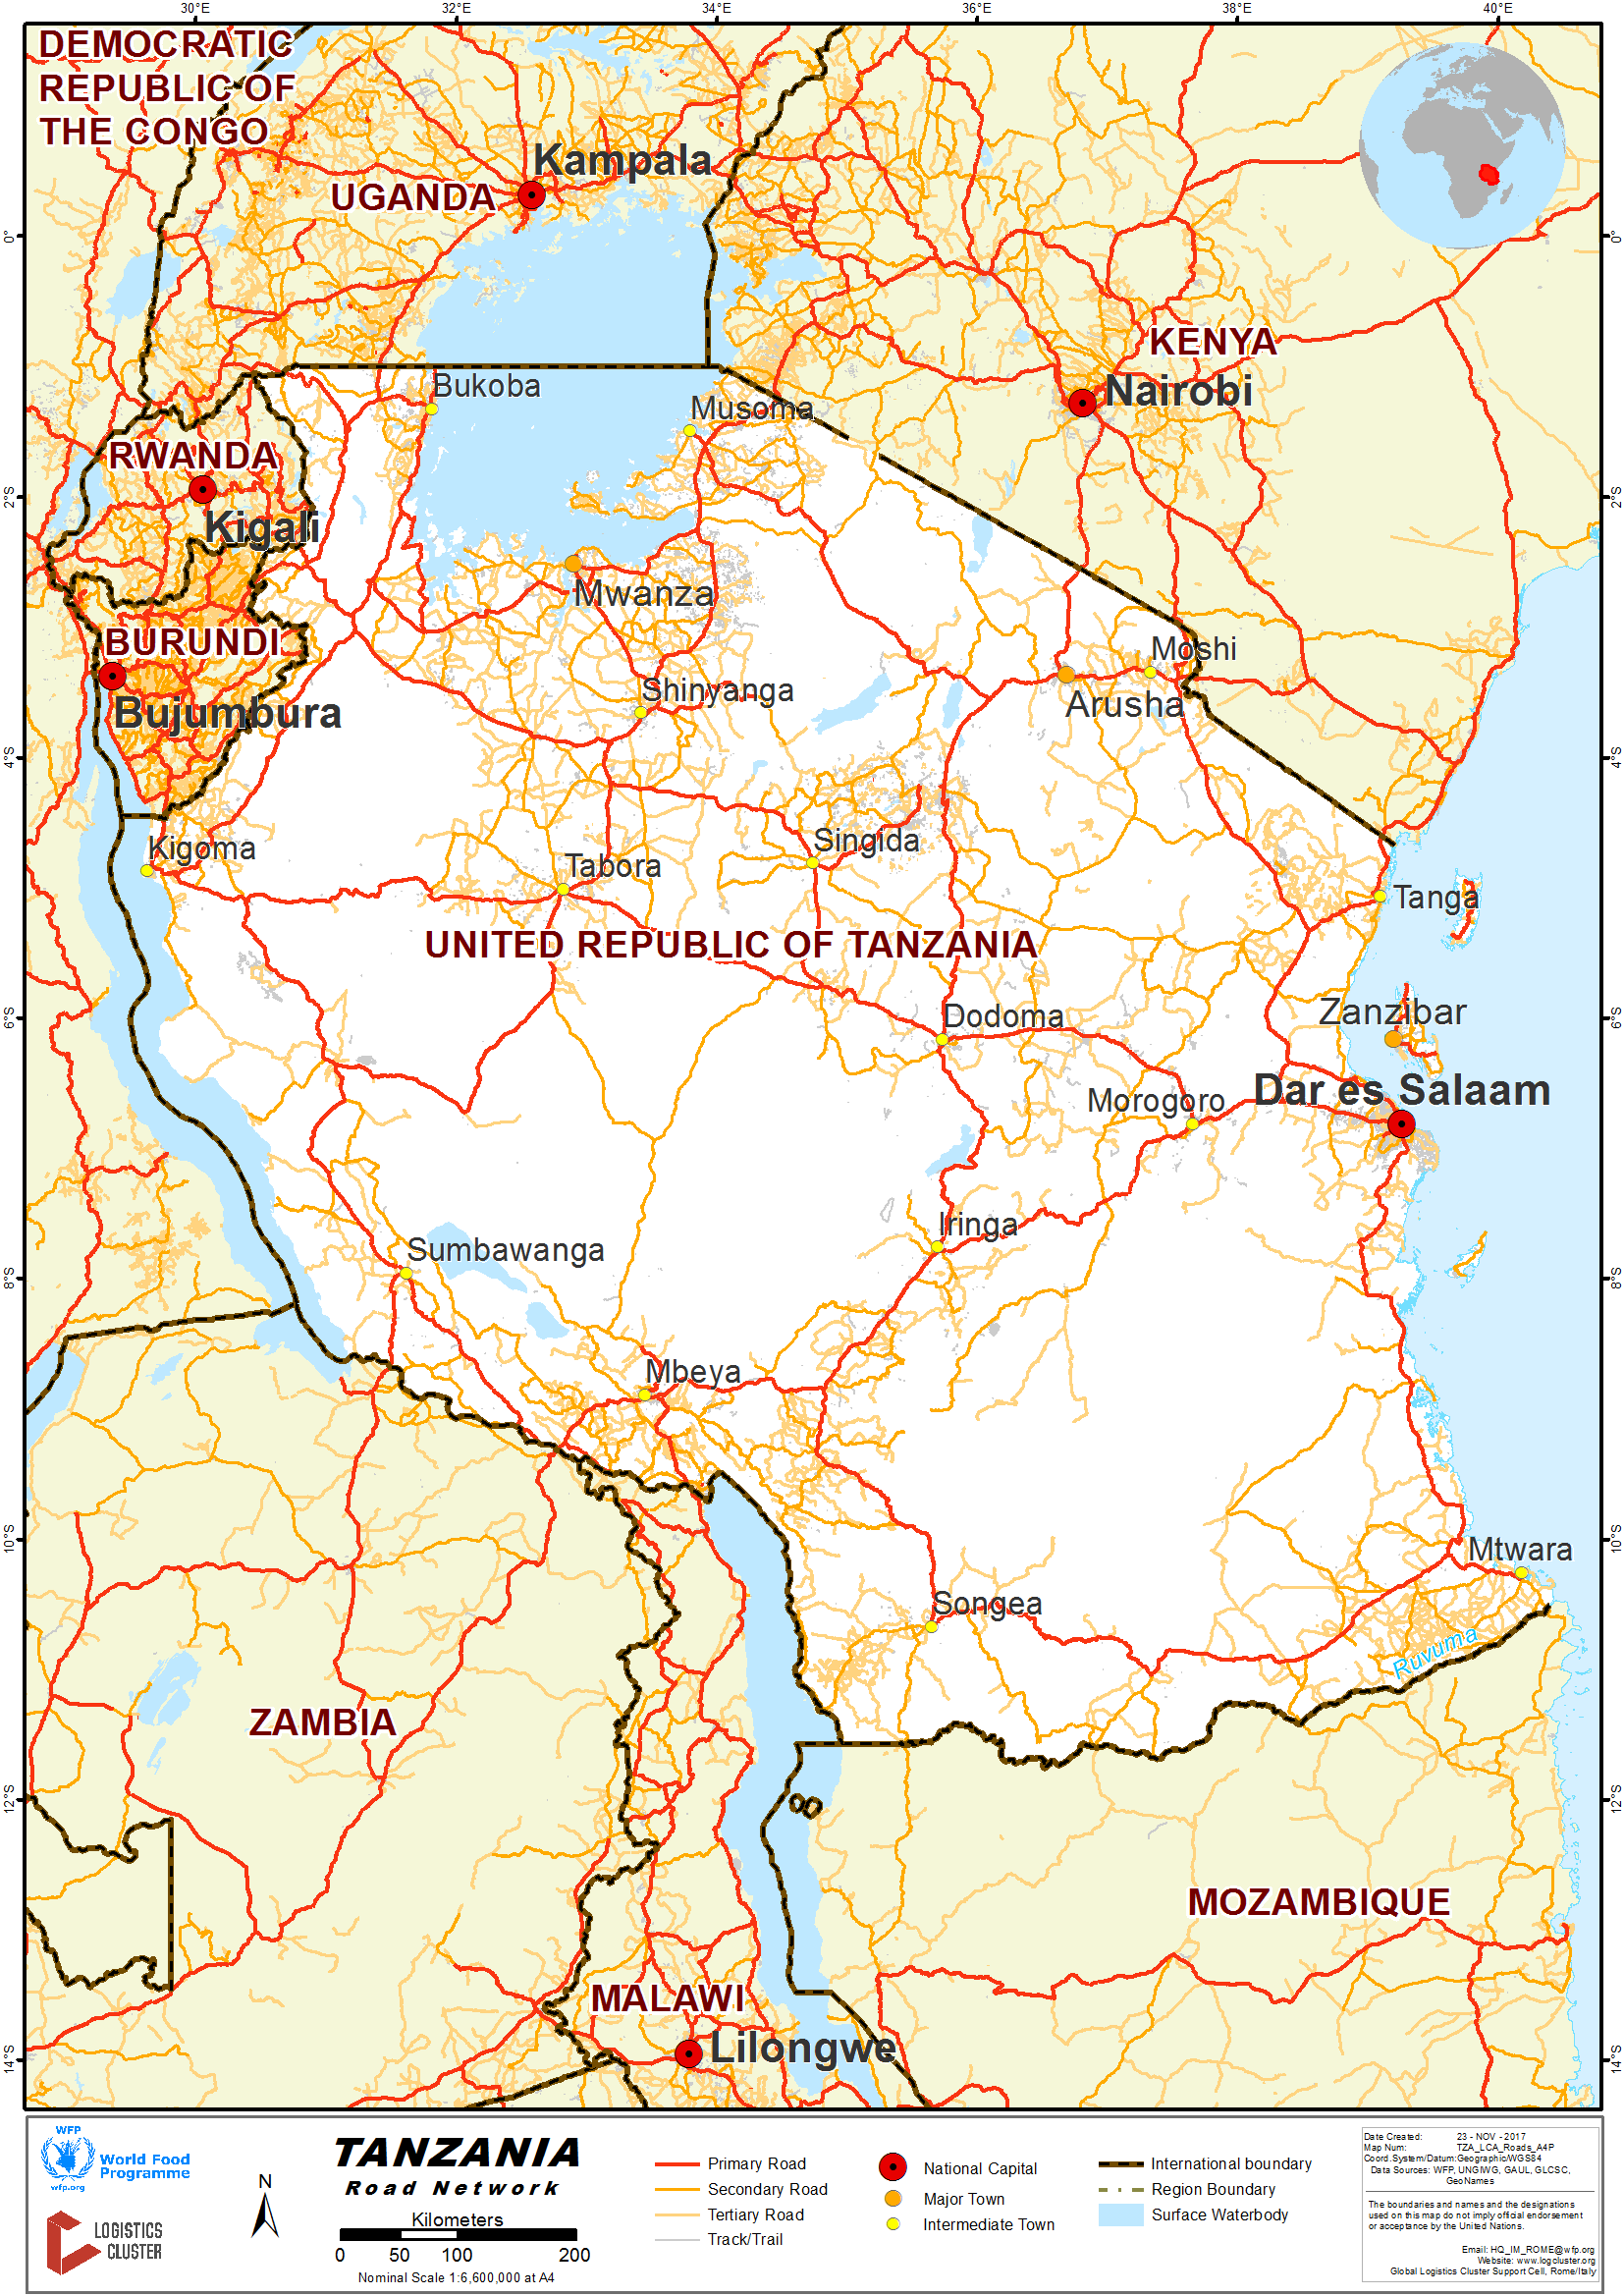 23 Tanzania Road Network Logistics Capacity Assessment Digital